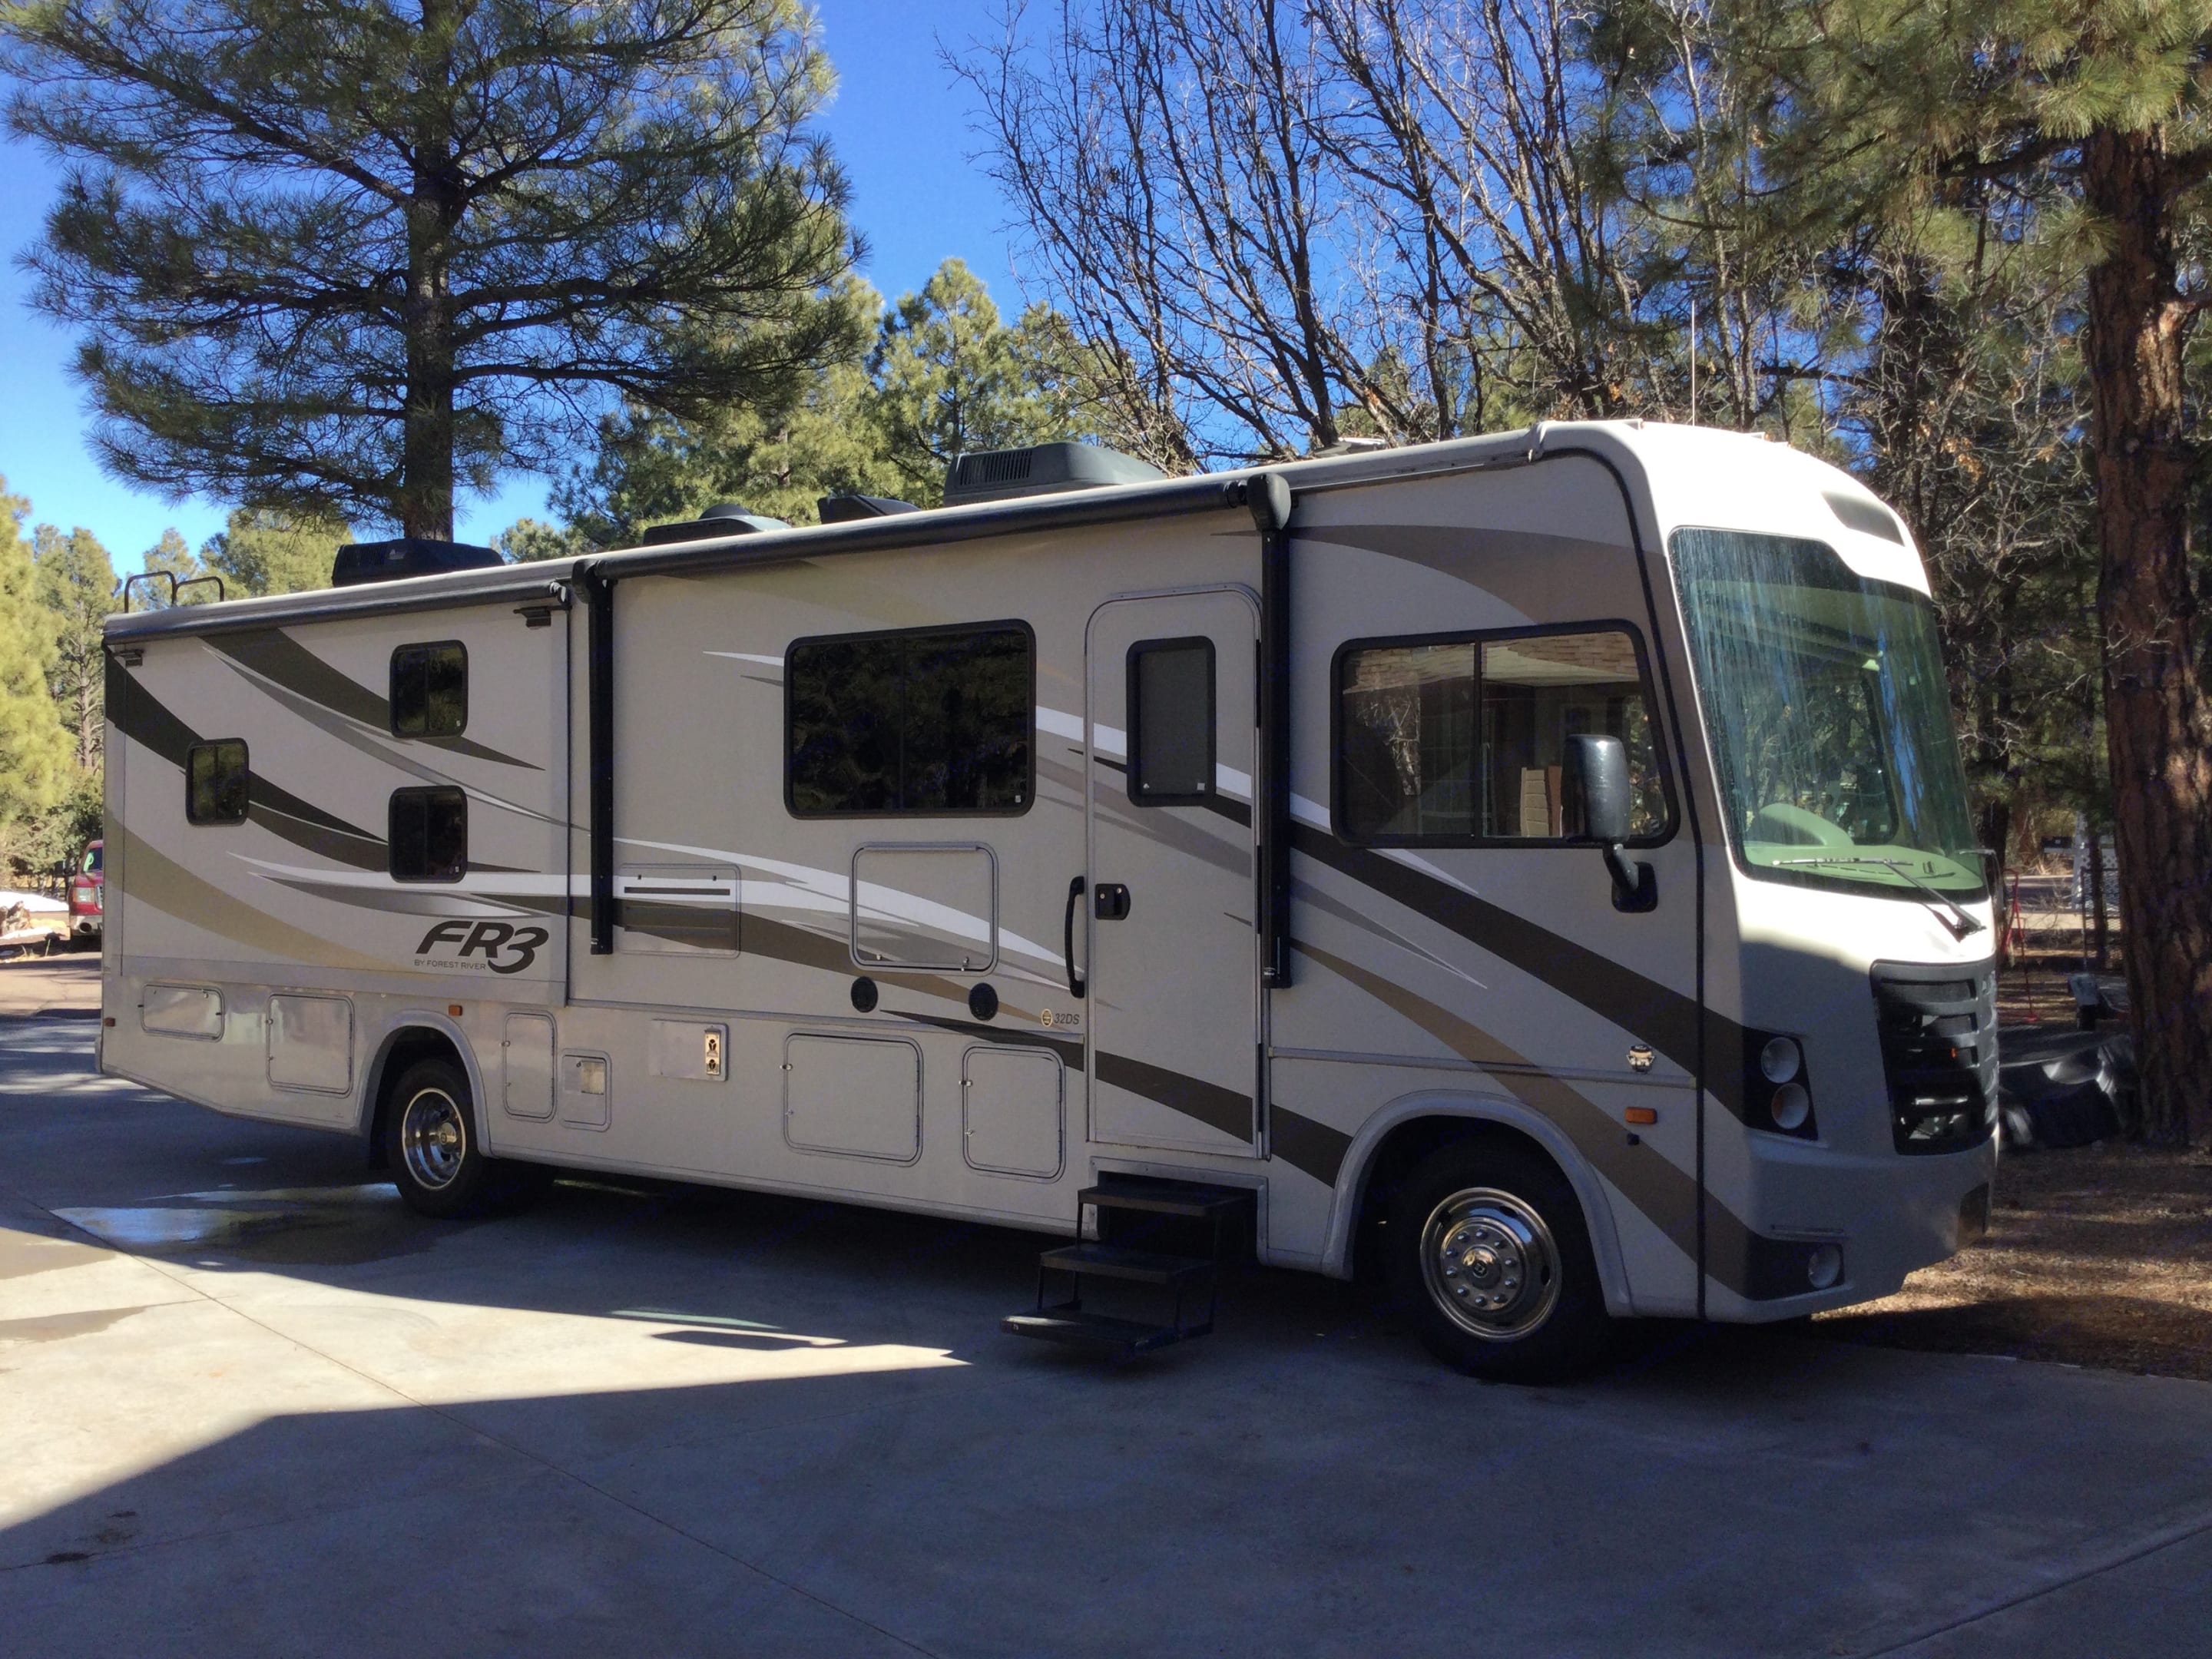 All the modern amenities built into one easy to drive RV. 2 roof AC, outdoor entertainment system, Bunks, Huge Fridge. Forest River Fr3 2016